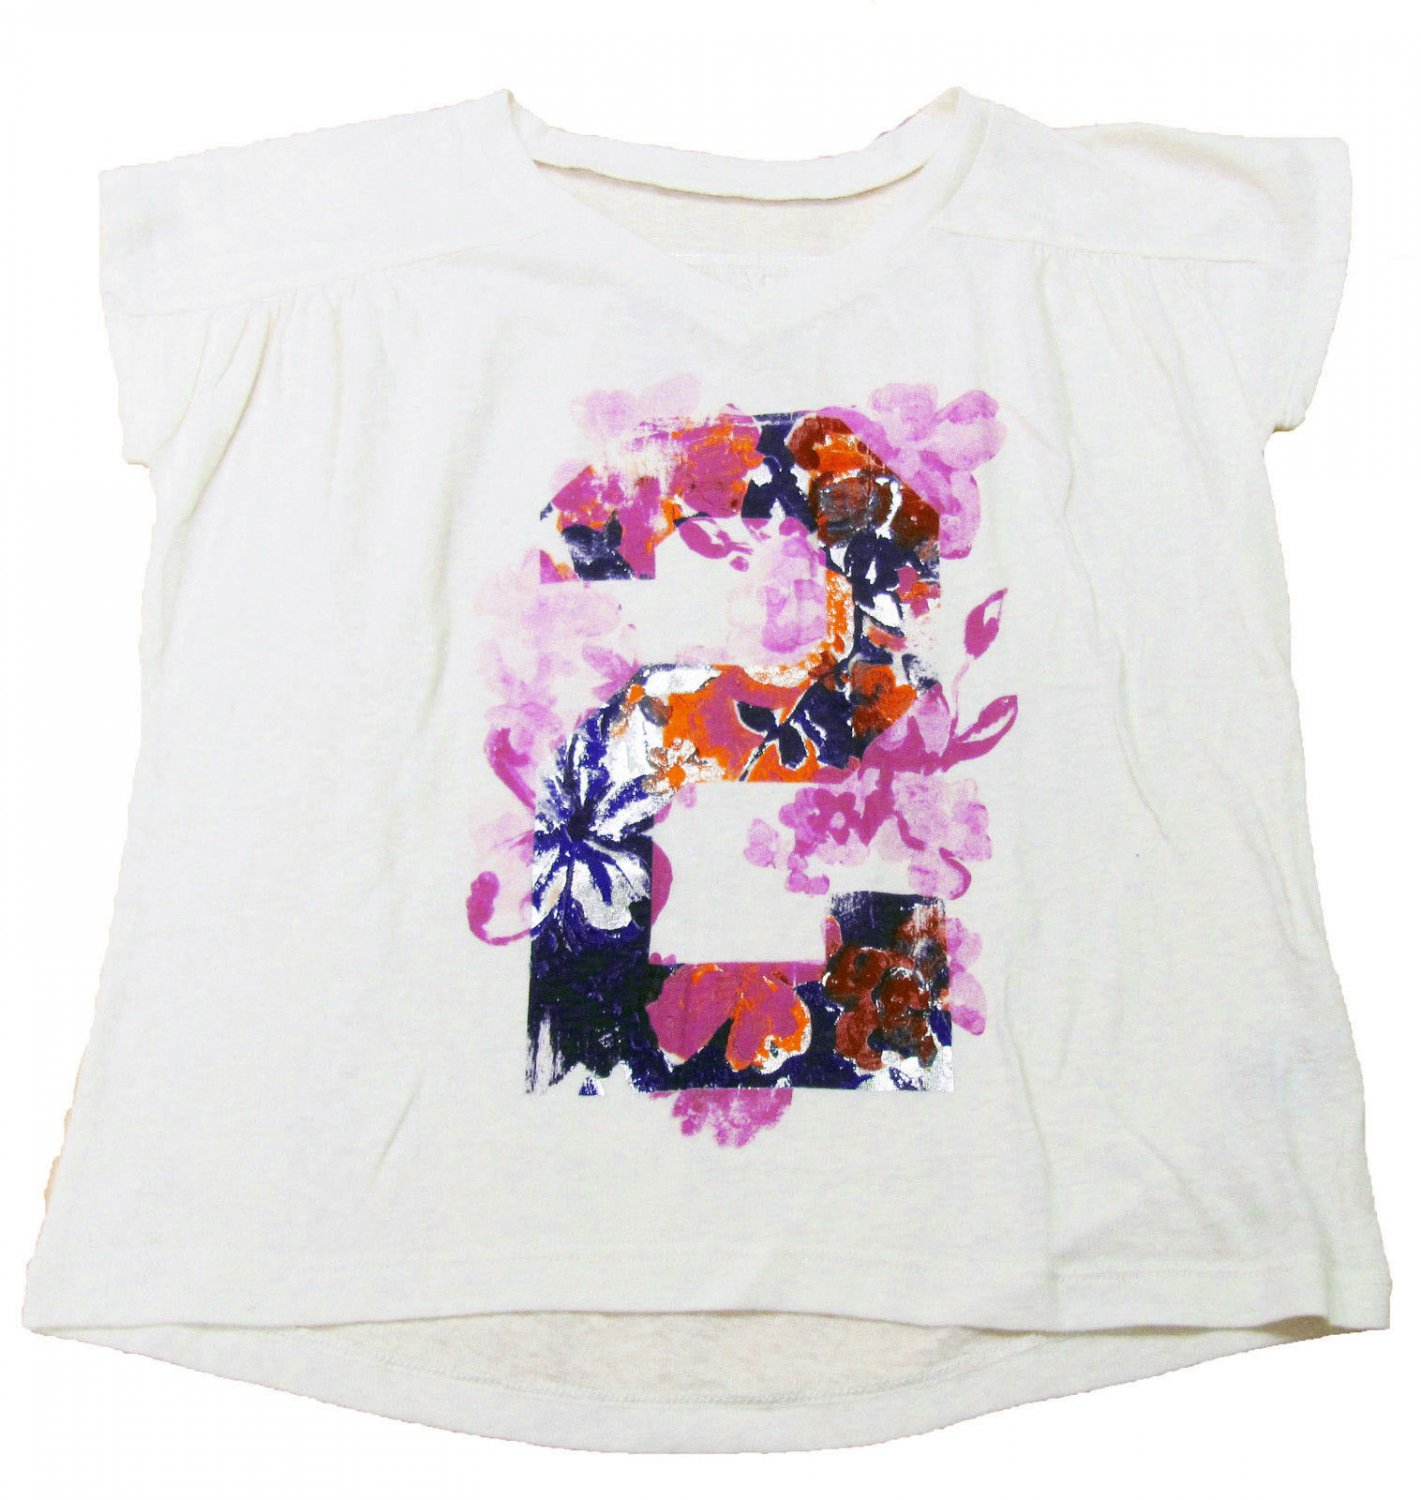 Arizona Girls 10-12 V-neck T-shirt Ivory Shirt with Purple Floral Graphic Youth Large L